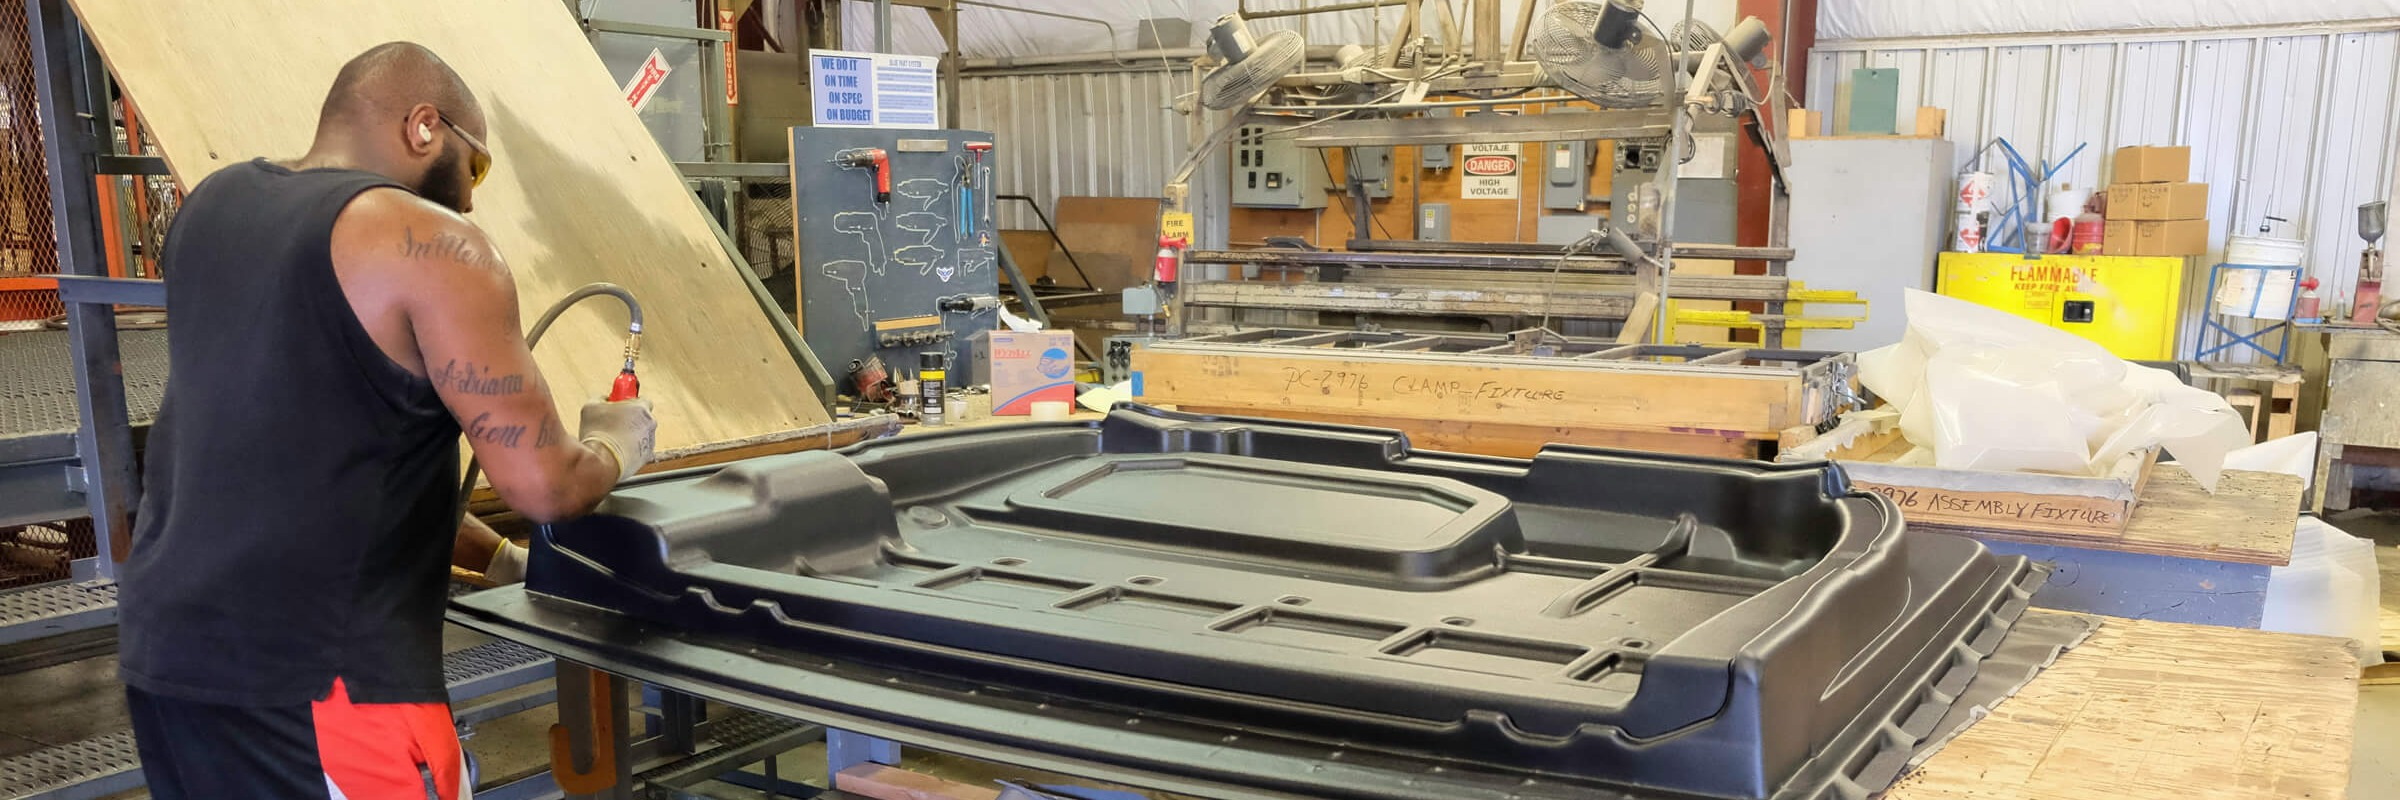 How Thermoforming Large Parts vs. Individually Made Parts Saves Weight, Time, and Money